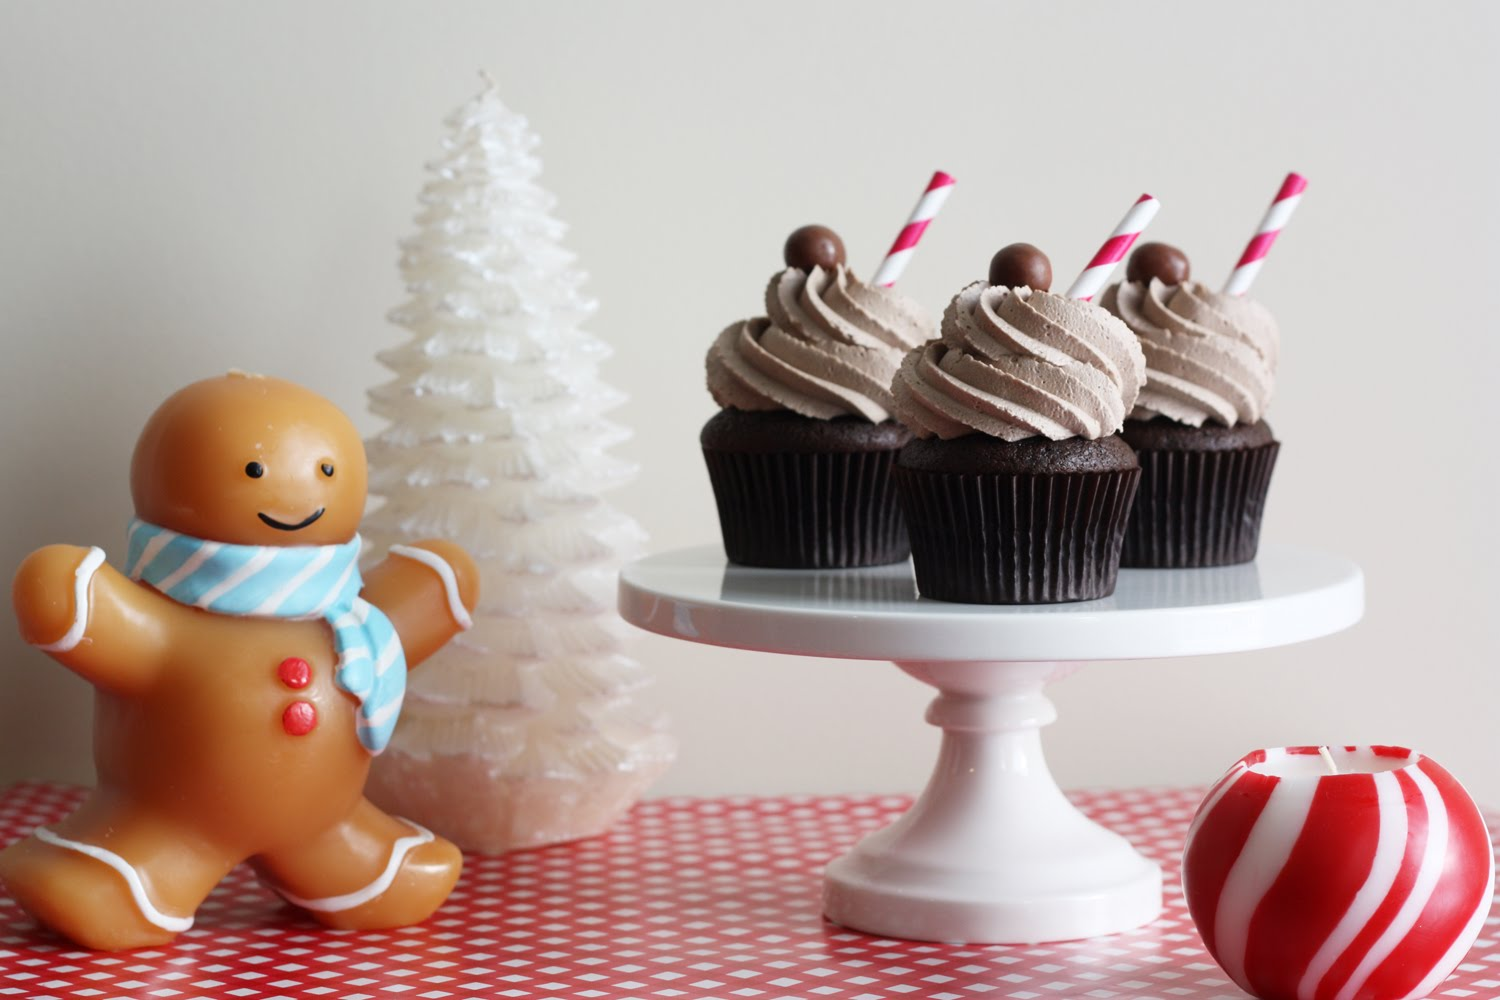 That Winsome Girl: Chocolate Malt Cupcakes